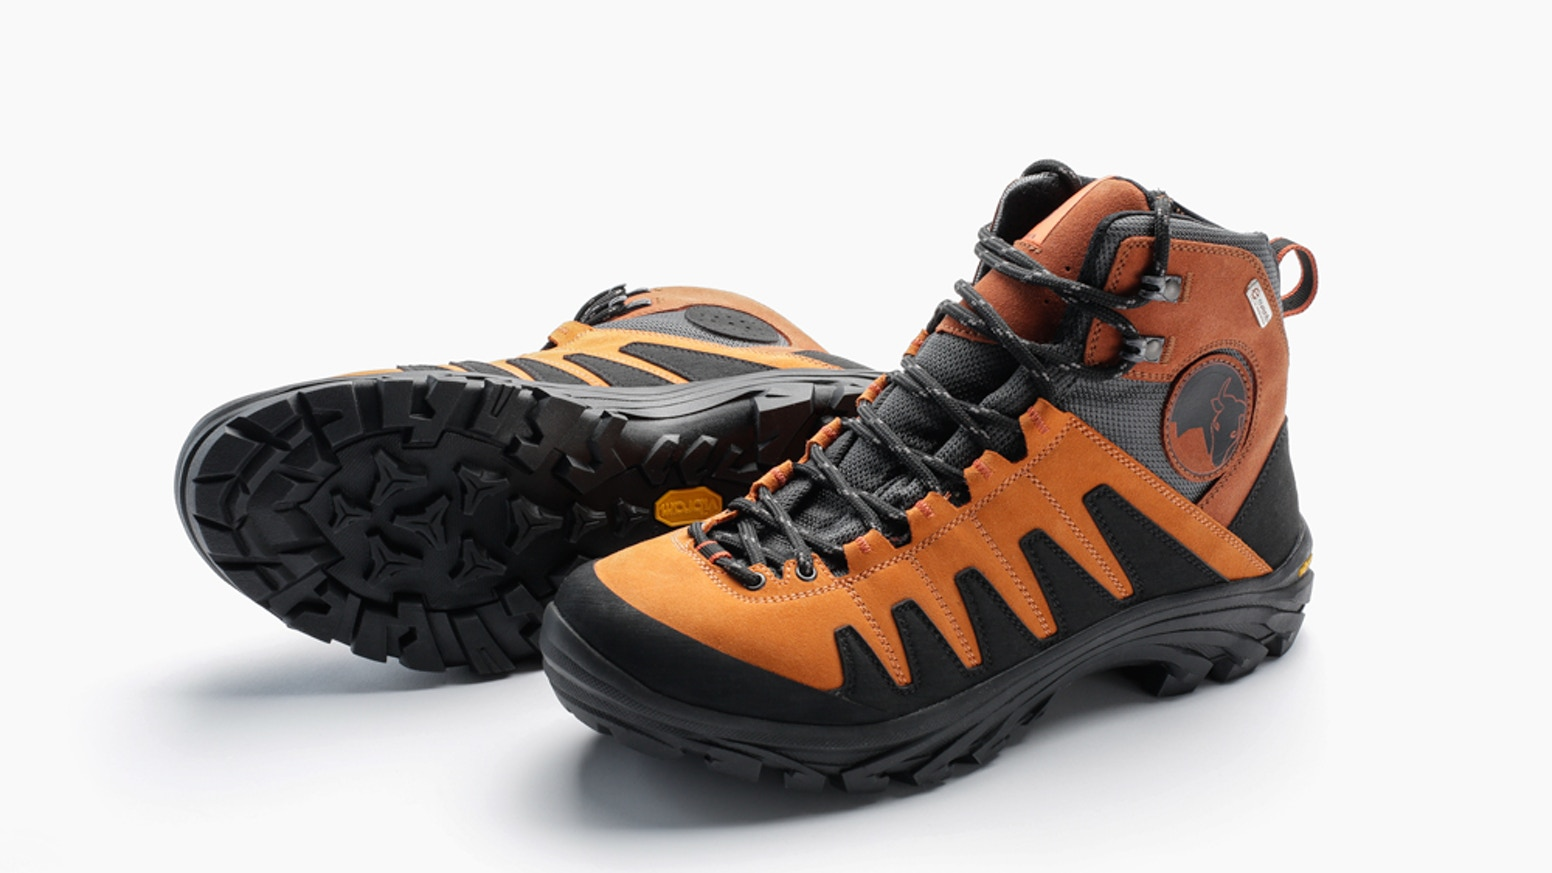 comforter q s us asinimage top ii format picks hiking of targhee comfortable tag for our waterproof boots boot keen asin encoding marketplace best serviceversion id men dghbloghiking mid ws